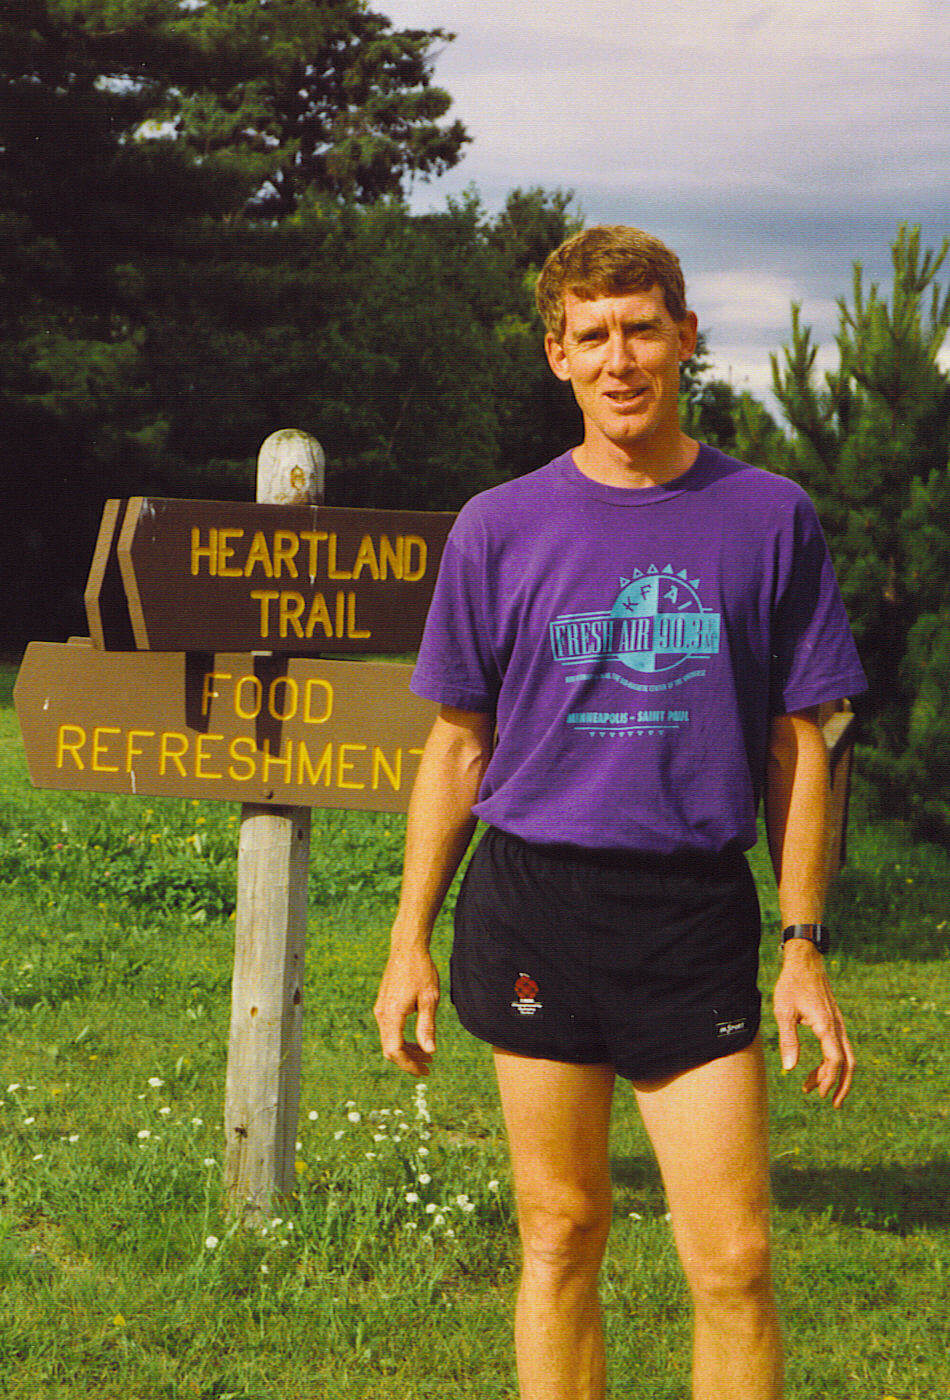 Man in running gear by a trail sign